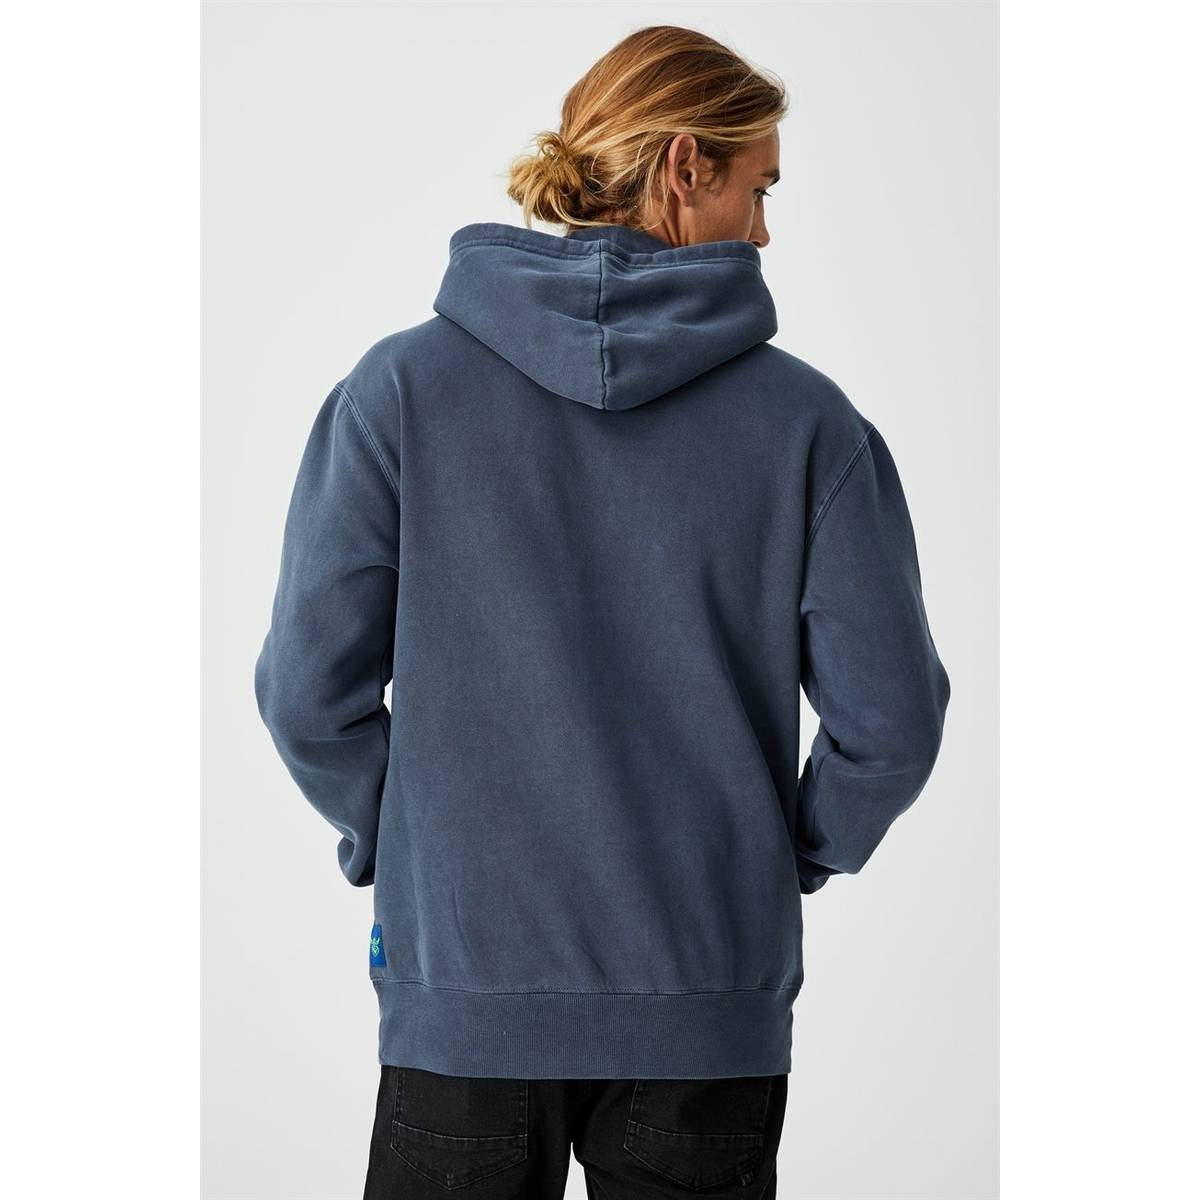 NRL Mens Chest Embroidery Hoodie2